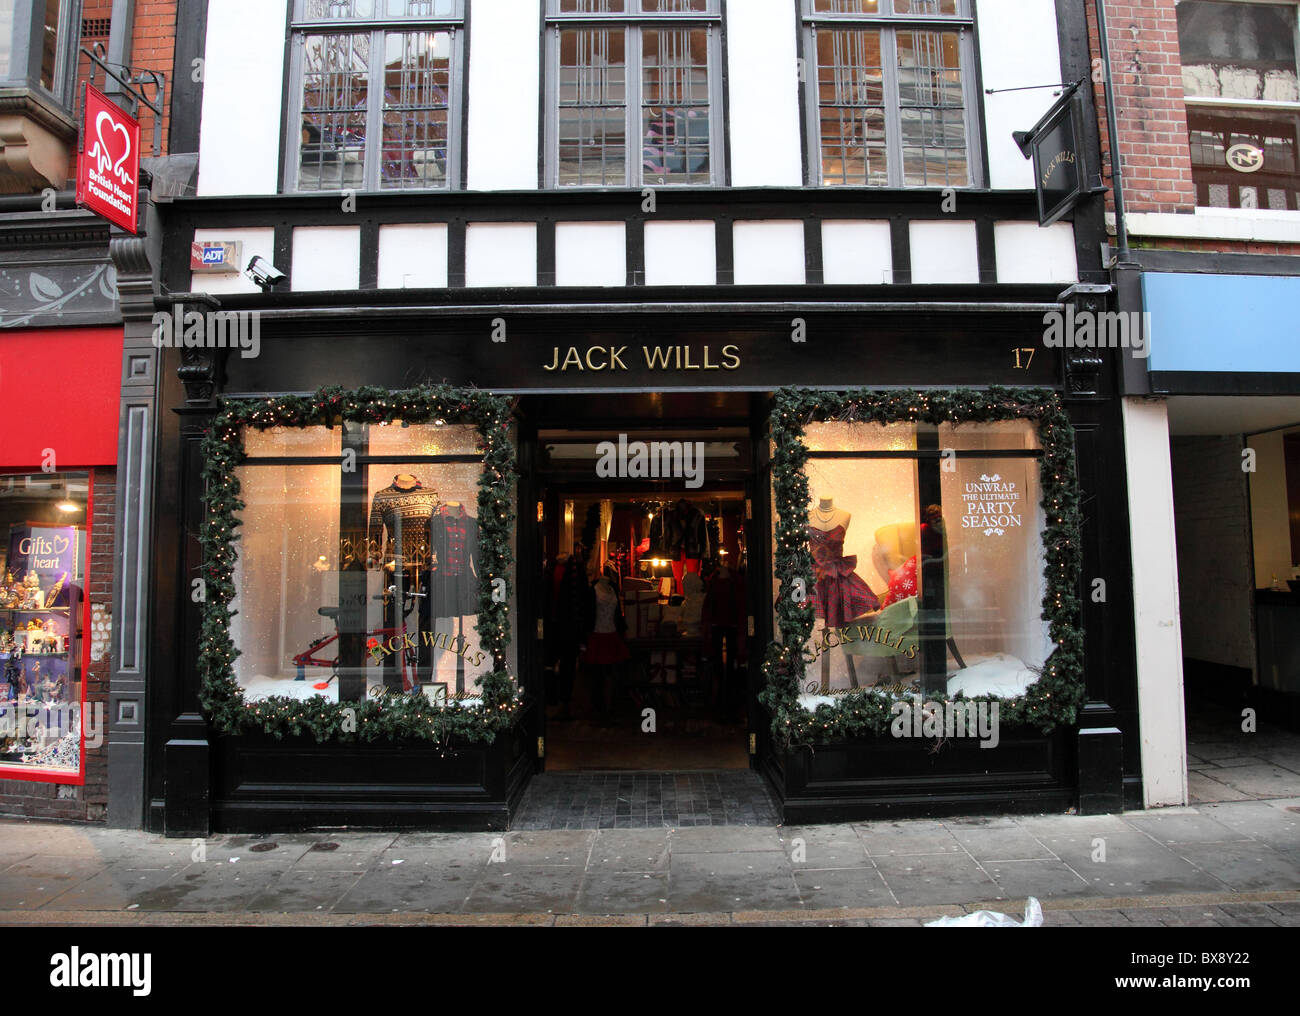 A Jack Wills Store in Nottingham, England, U.K. - Stock Image